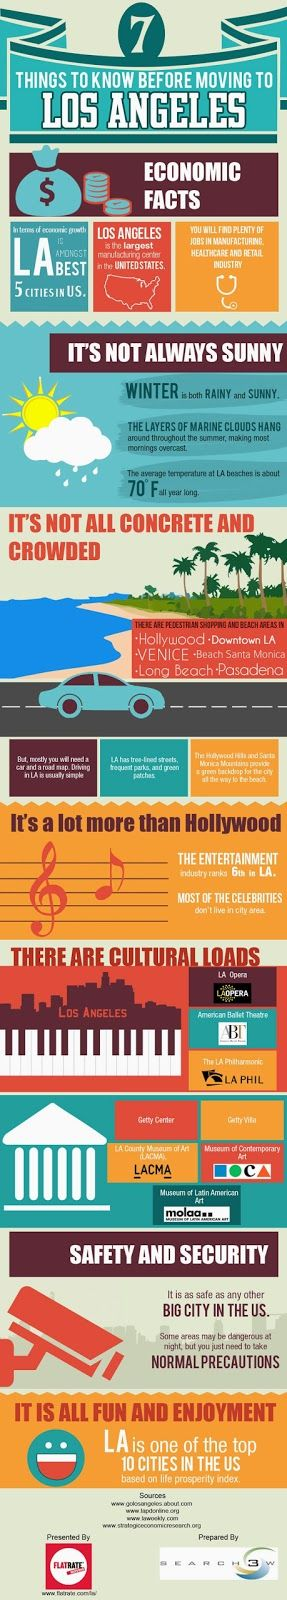 """This infographic titled """"7 things to know before moving to Los Angeles"""" from FlatRate Moving  guides people about some facts about livi..."""